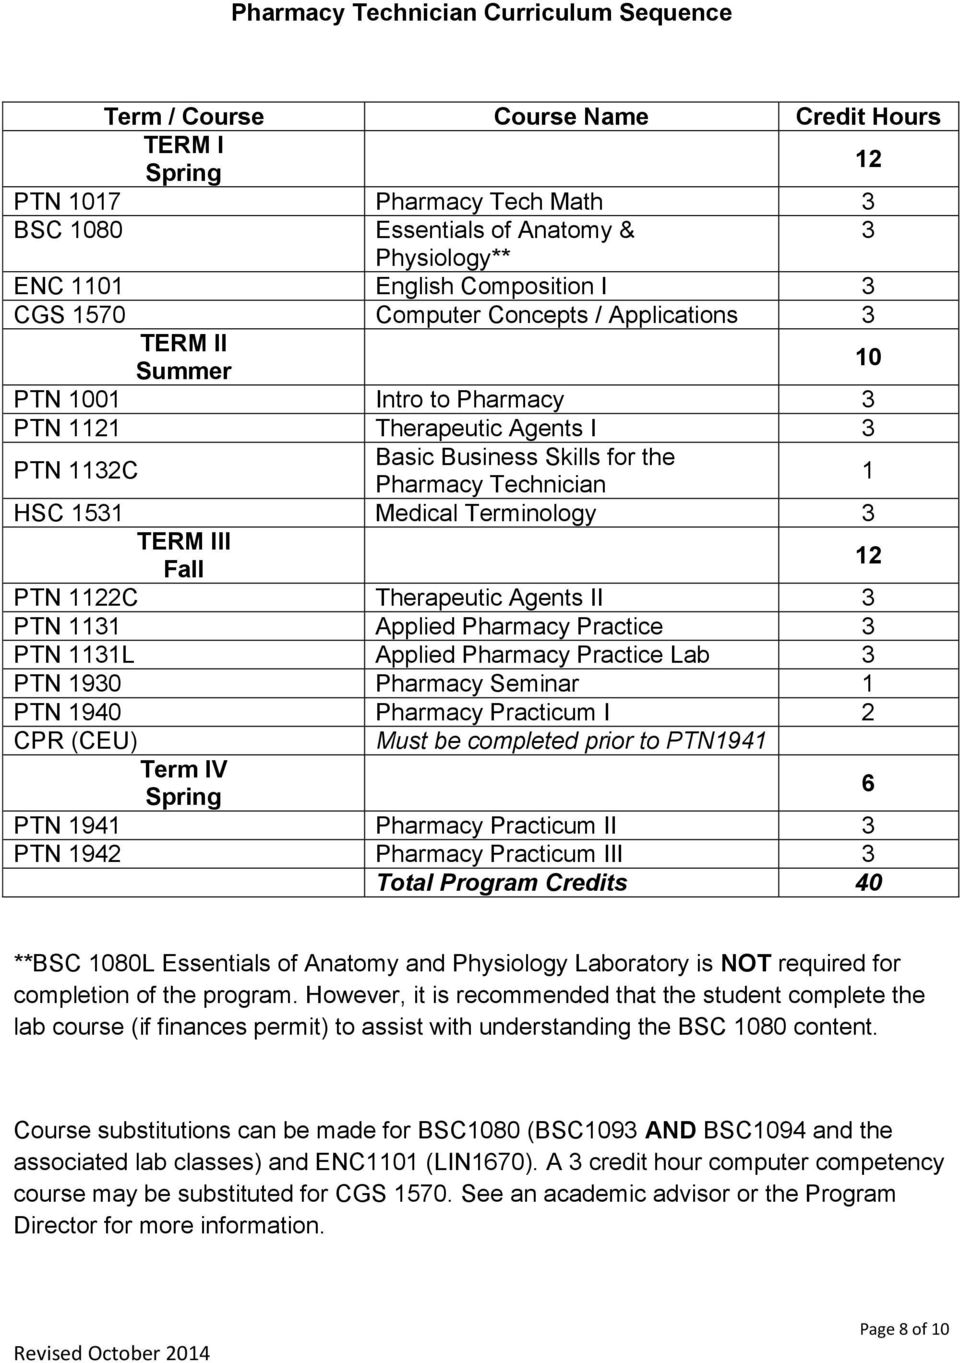 1 HSC 1531 Medical Terminology 3 TERM III Fall 12 PTN 1122C Therapeutic Agents II 3 PTN 1131 Applied Pharmacy Practice 3 PTN 1131L Applied Pharmacy Practice Lab 3 PTN 1930 Pharmacy Seminar 1 PTN 1940